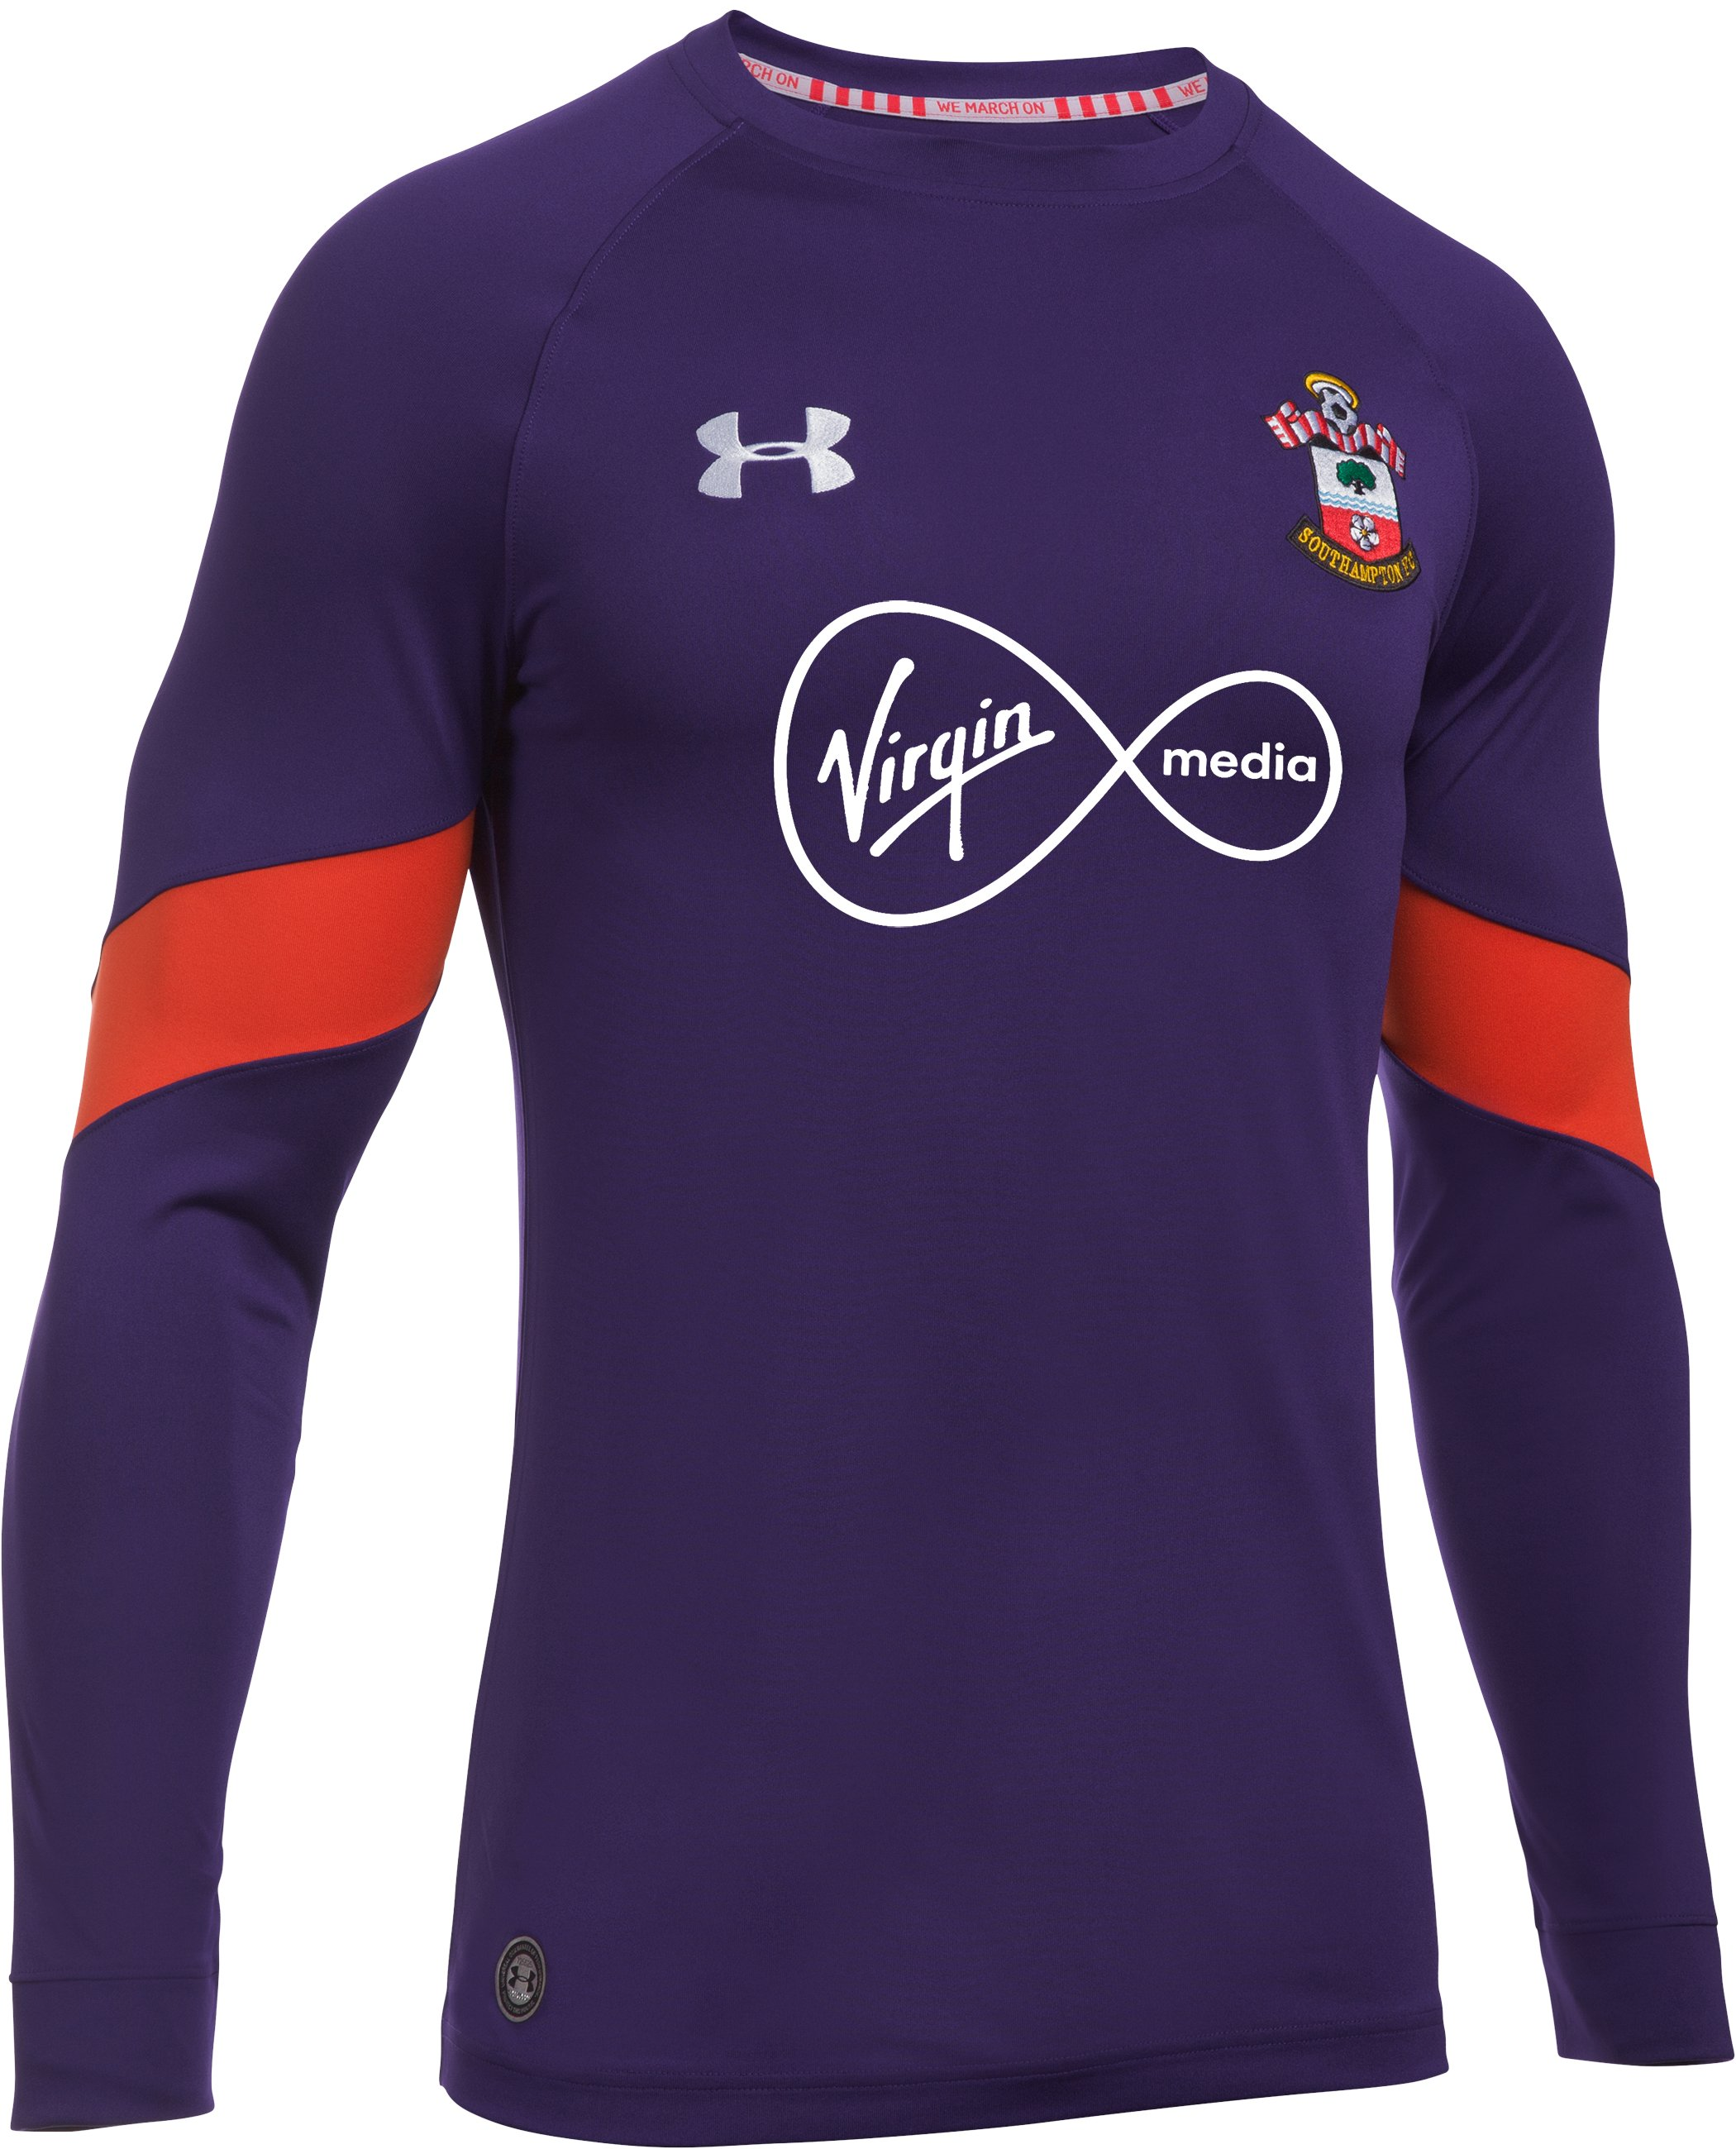 Men's Southampton 16/17 Goalkeeper Replica Jersey, Purple Rain